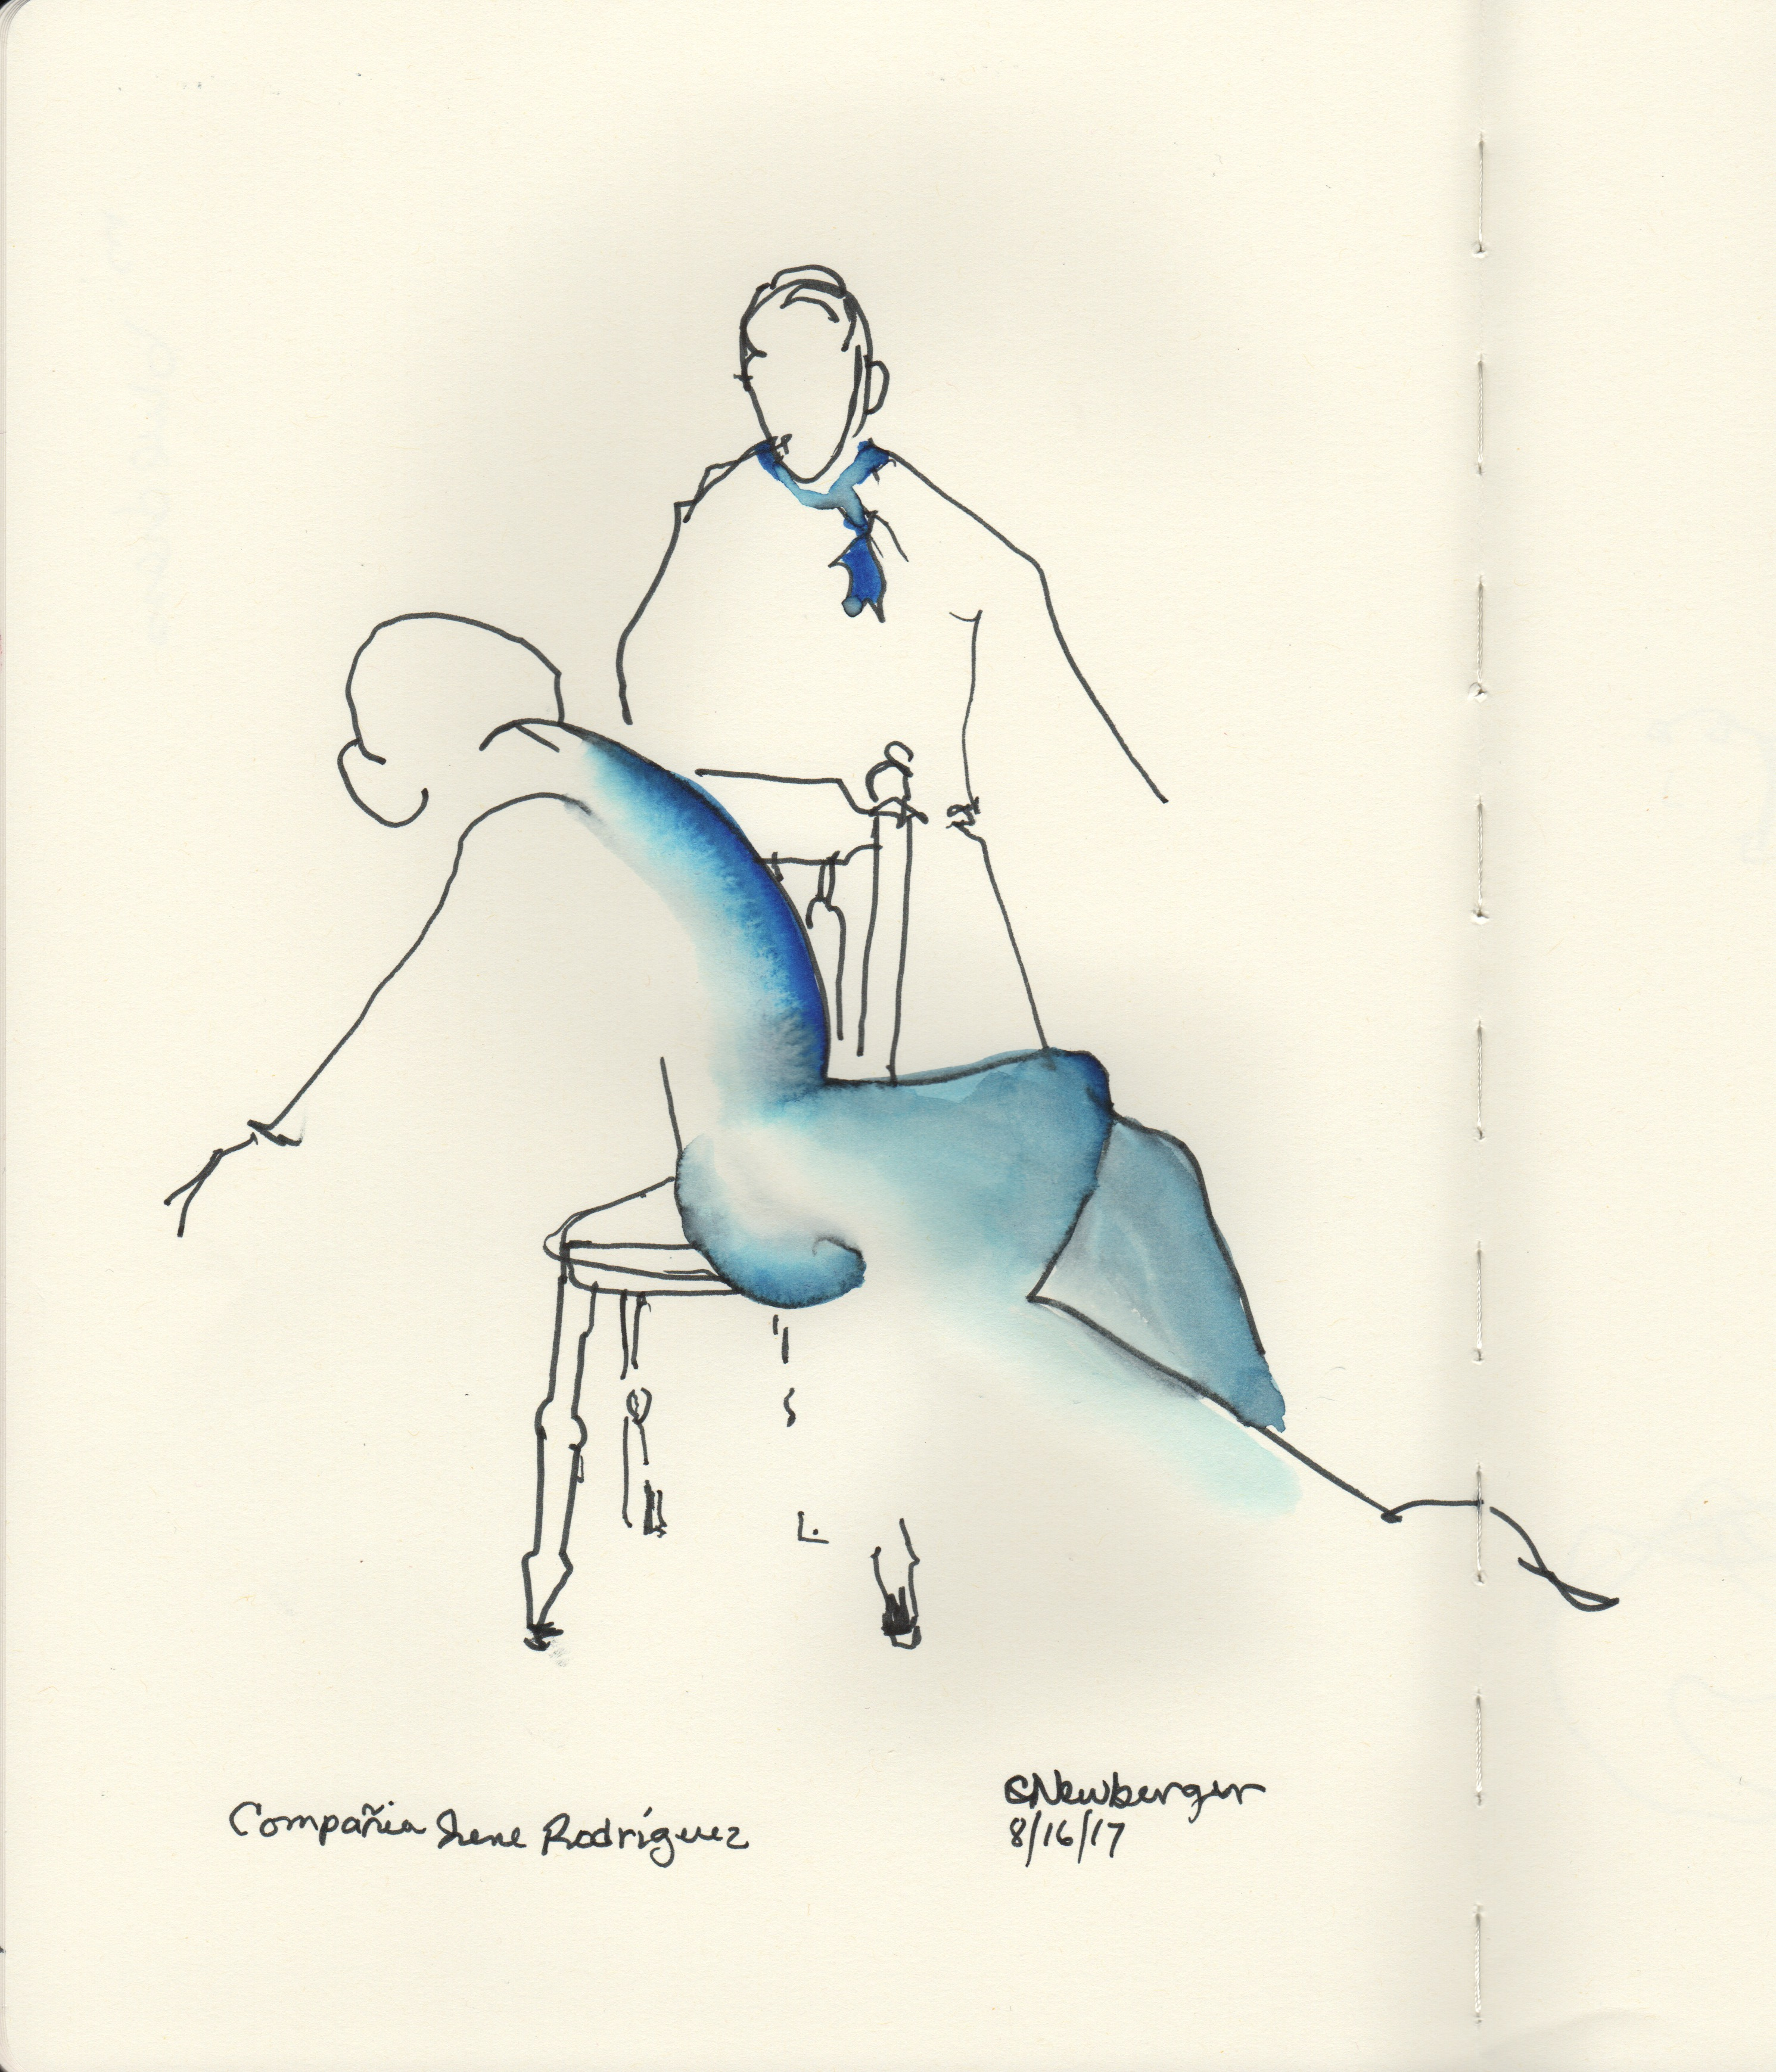 Compagñia Irene Rodriguez, Duet in Blue